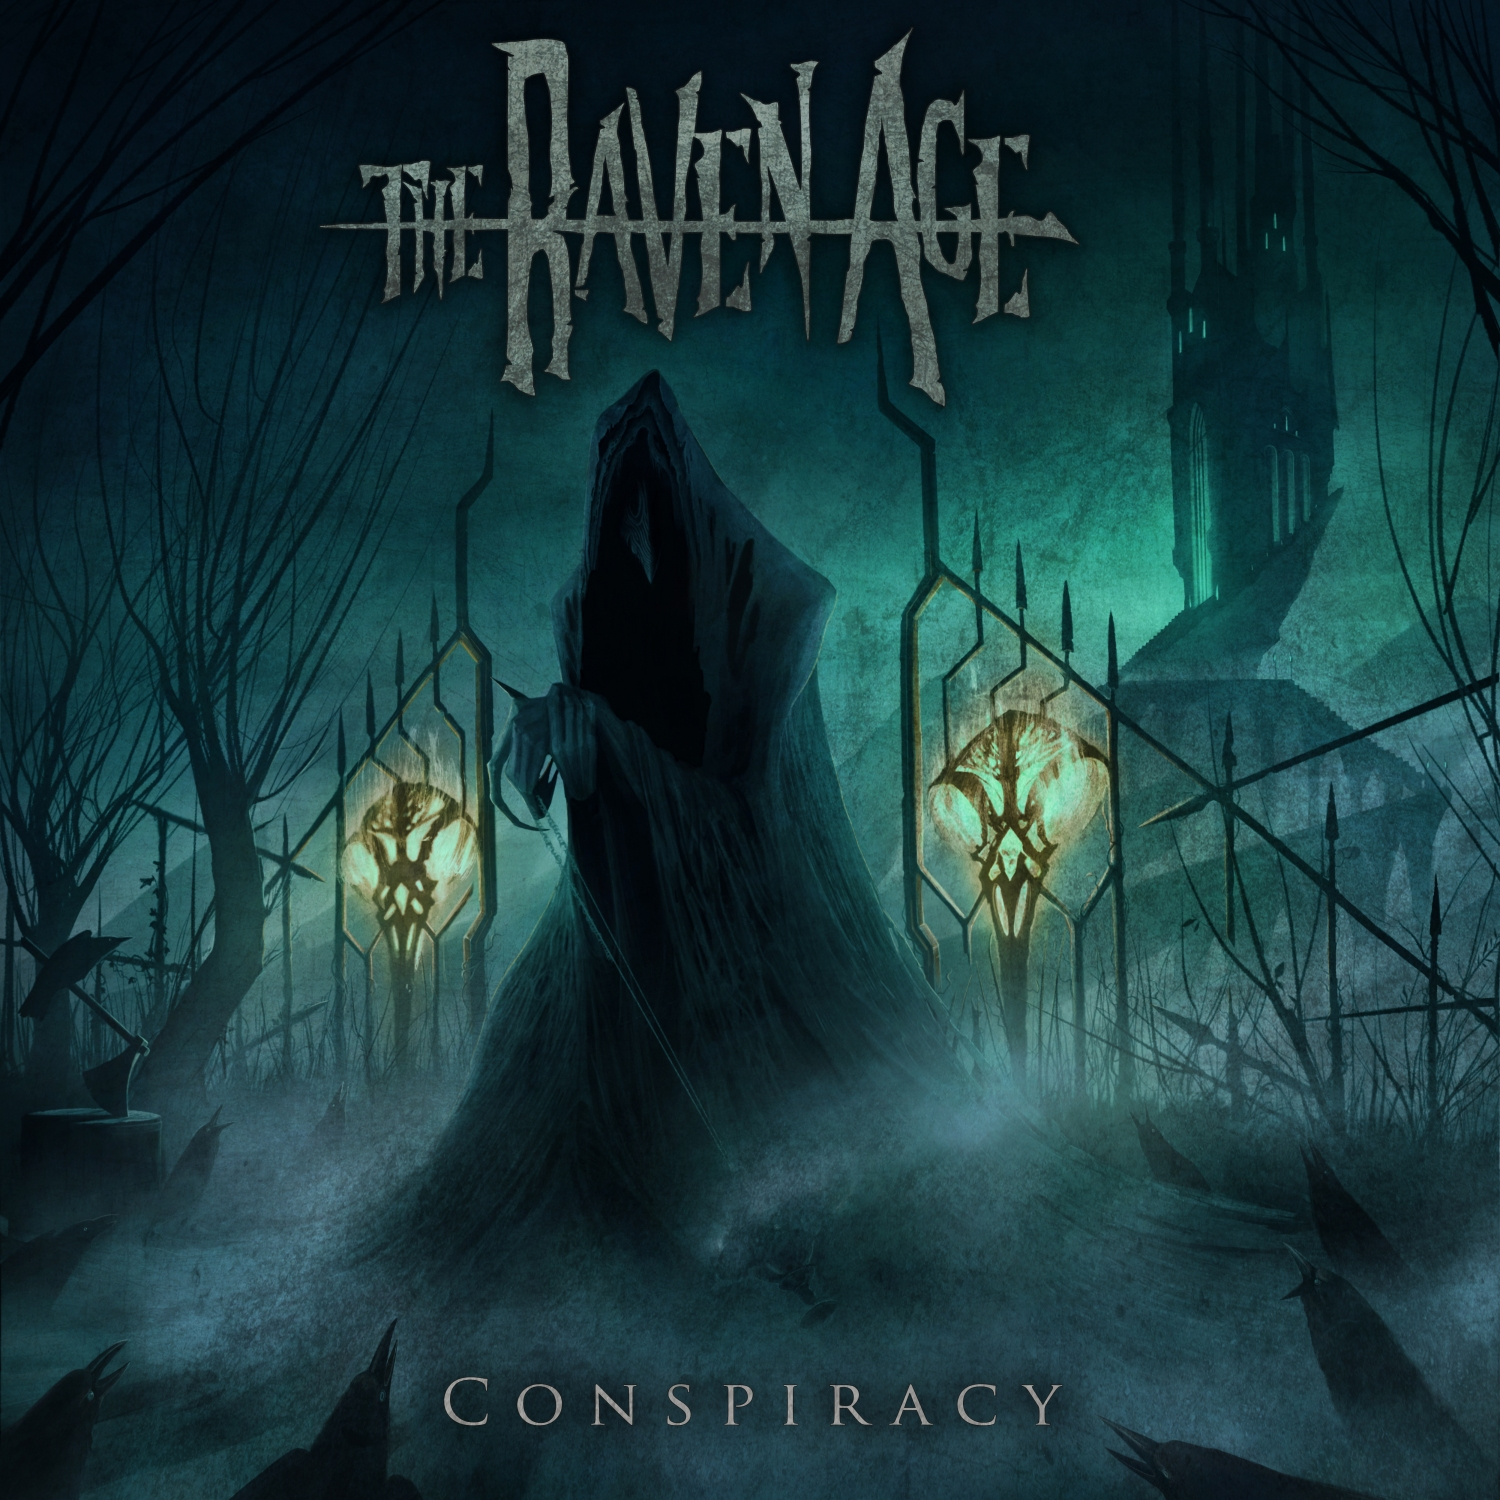 the-raven-age-conspiracy-der-zweite-streich-album-review